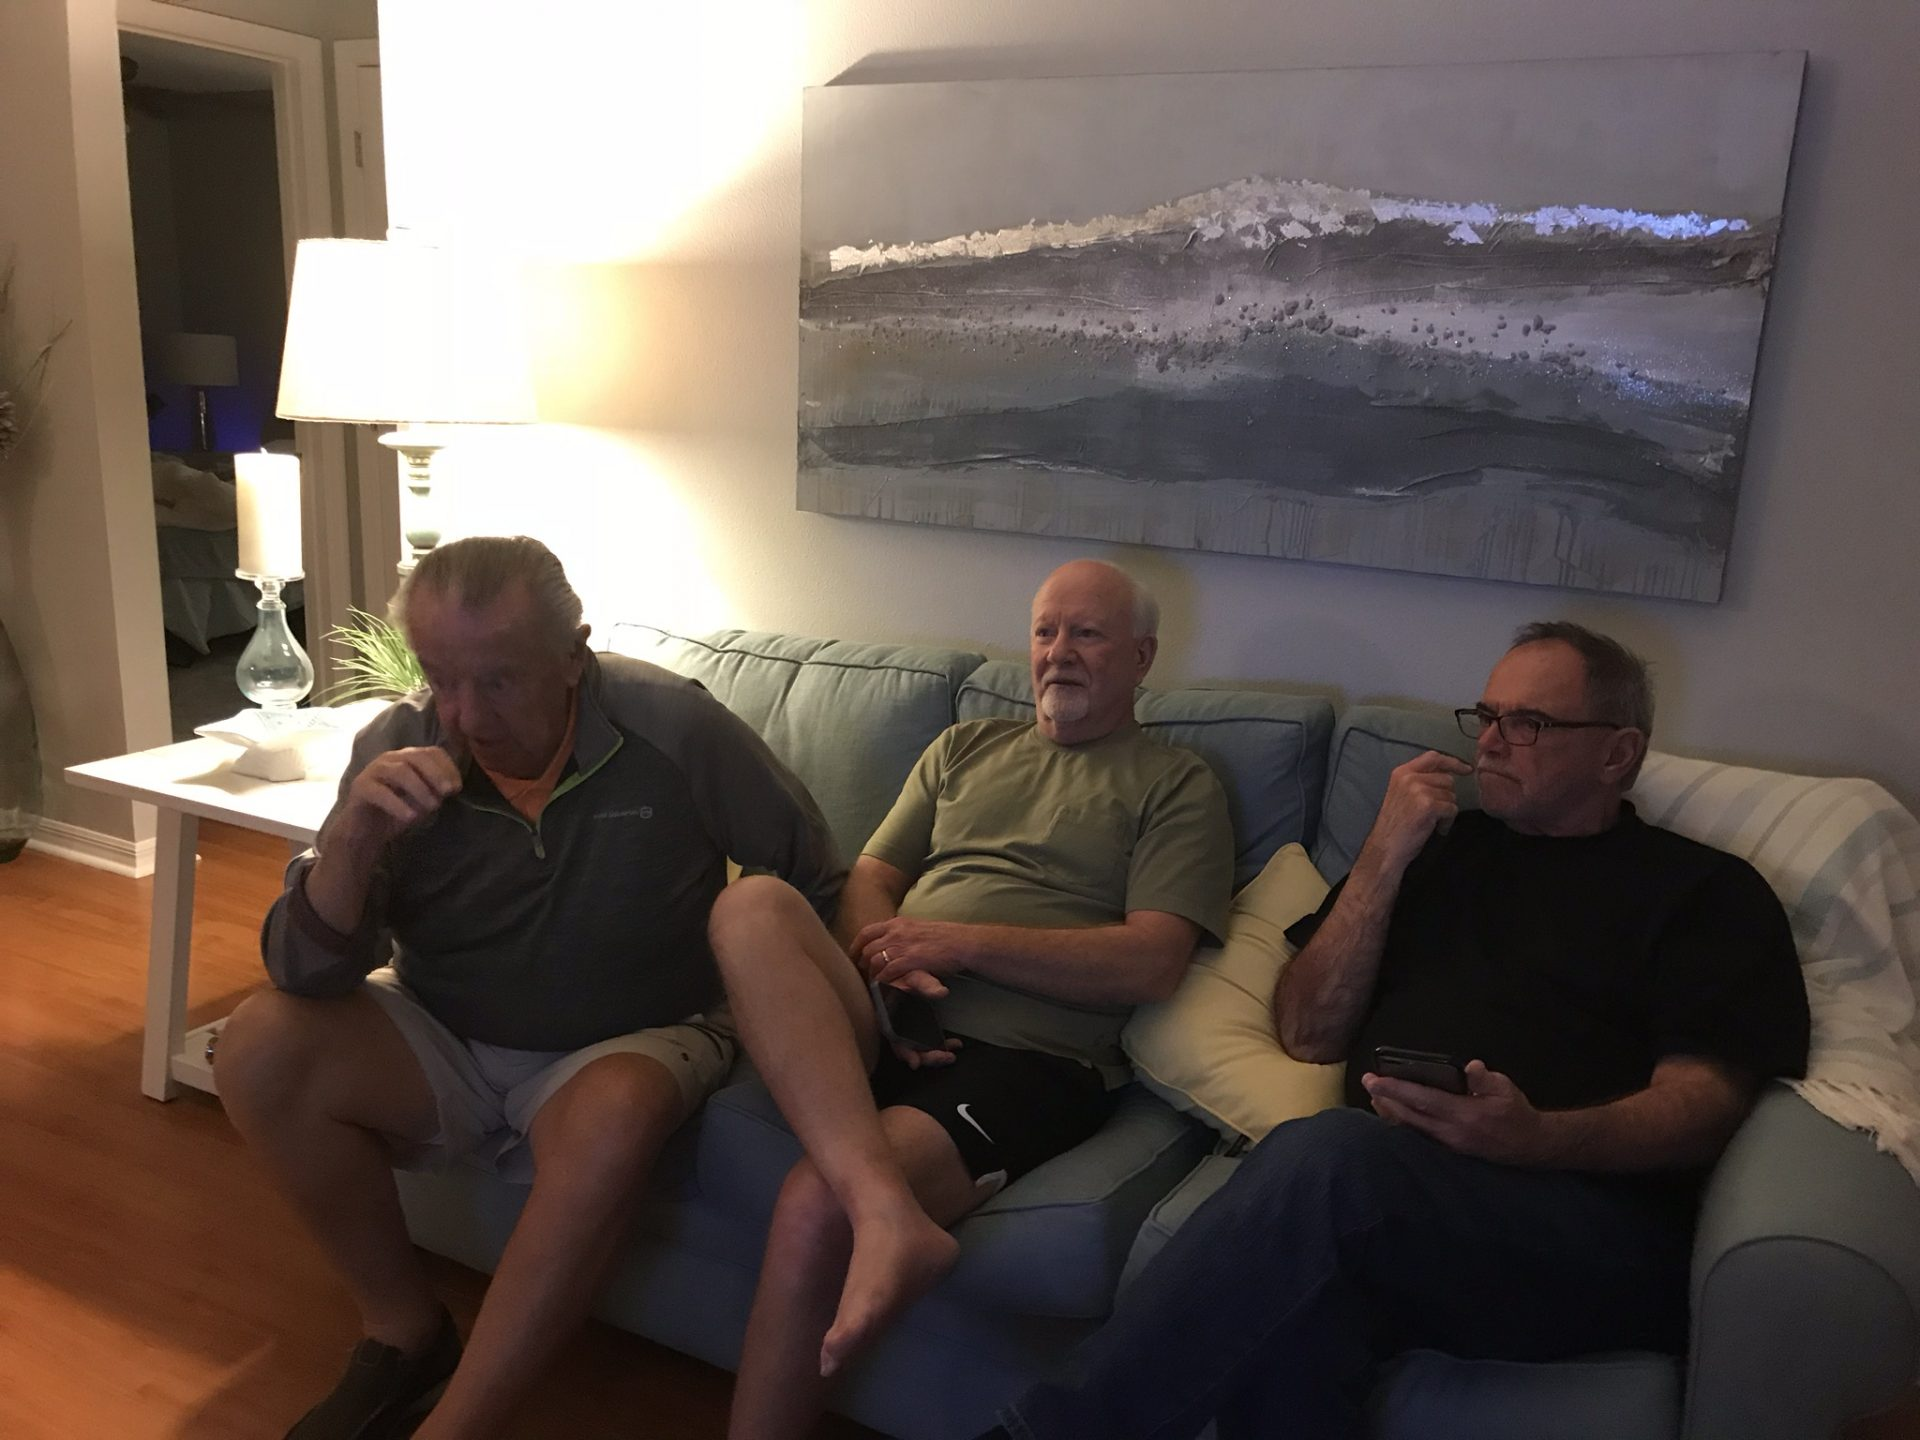 The three boys together in Florida. Those three! Laughter around when they were together. We girls just sat back and laughter along.  Our dear friend will be sooooo missed. Mike and Jessica mox